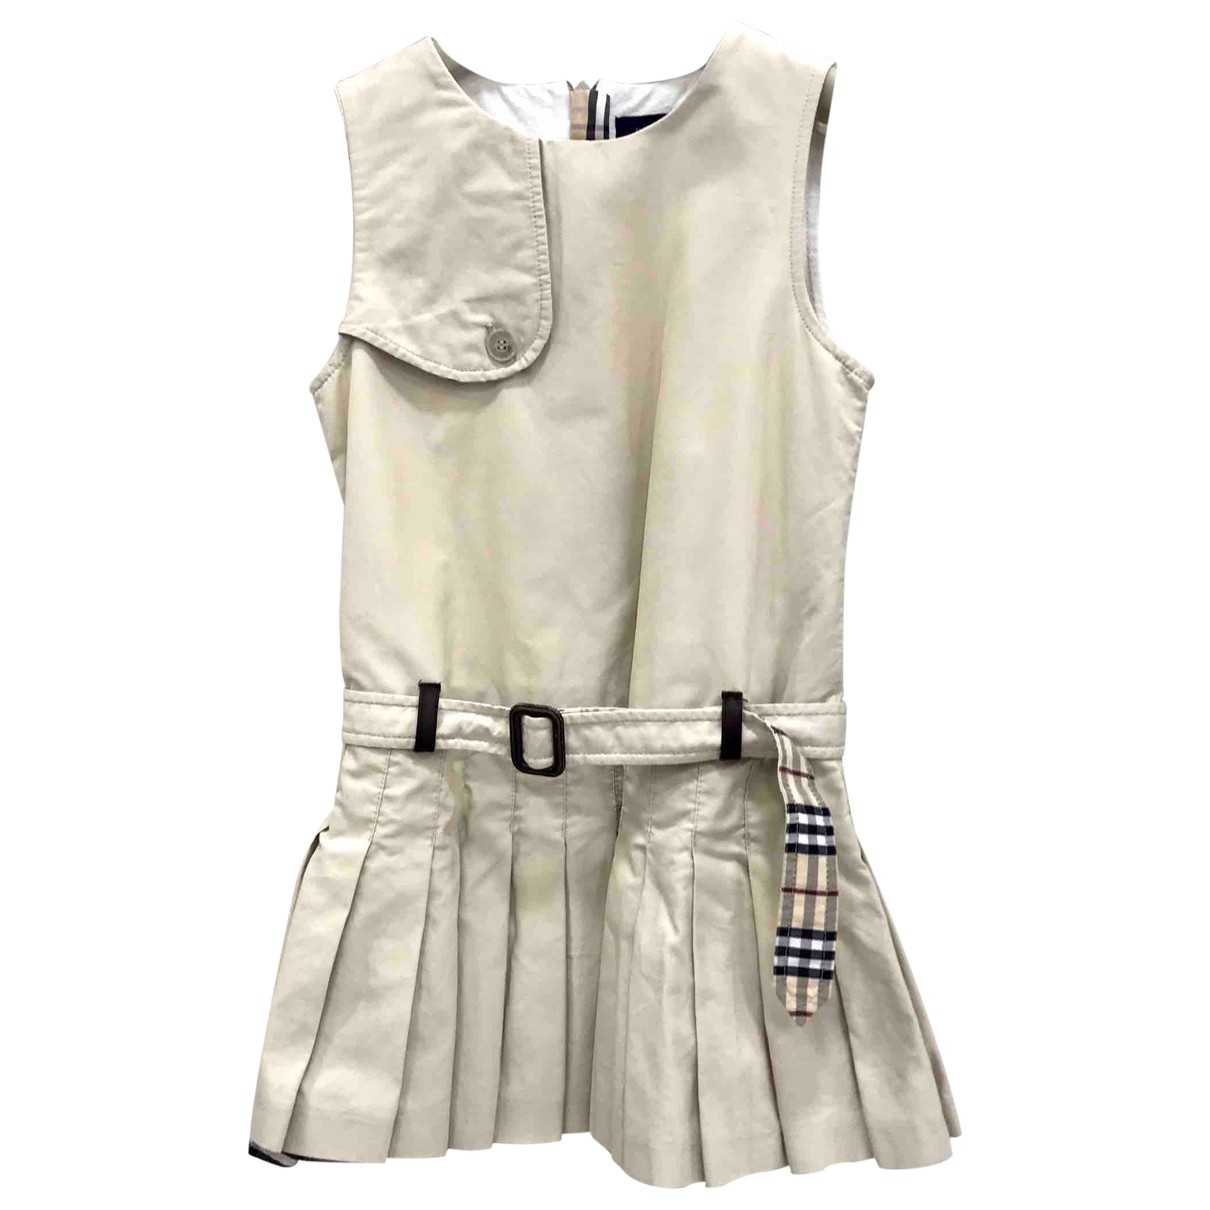 Burberry \N Beige Cotton dress for Kids 3 years - up to 98cm FR